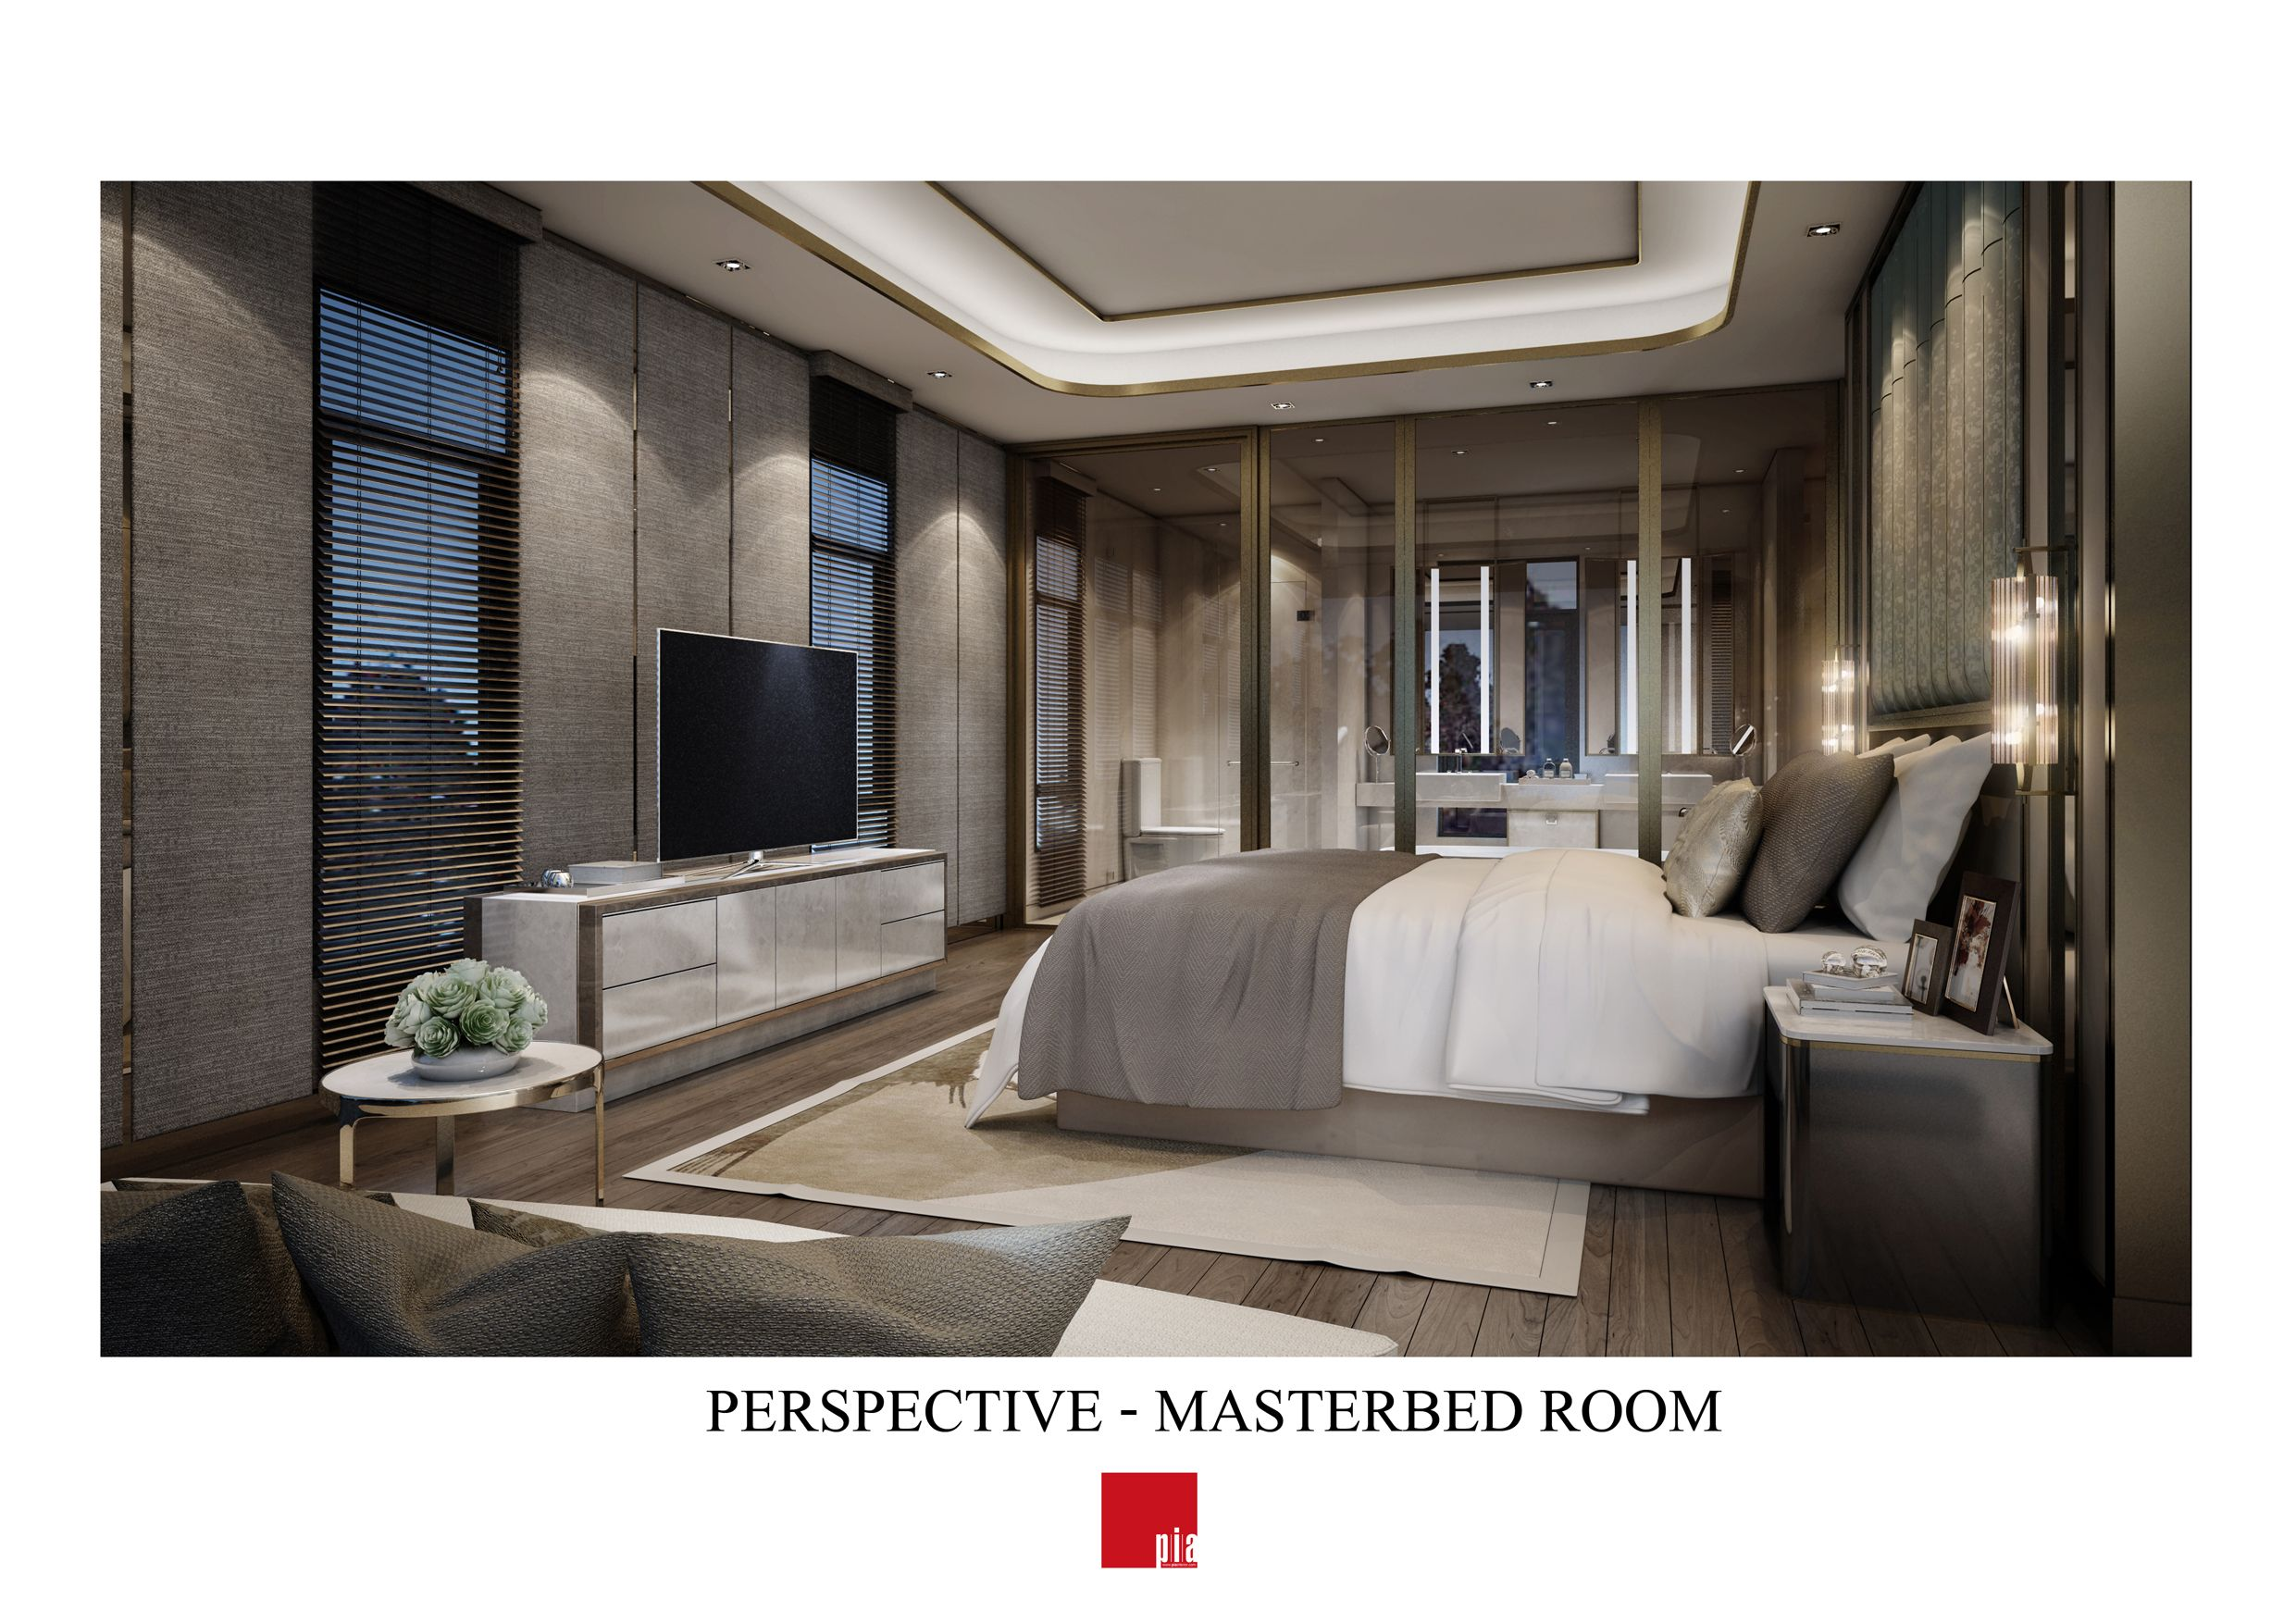 perspective-masterbed-room-view2